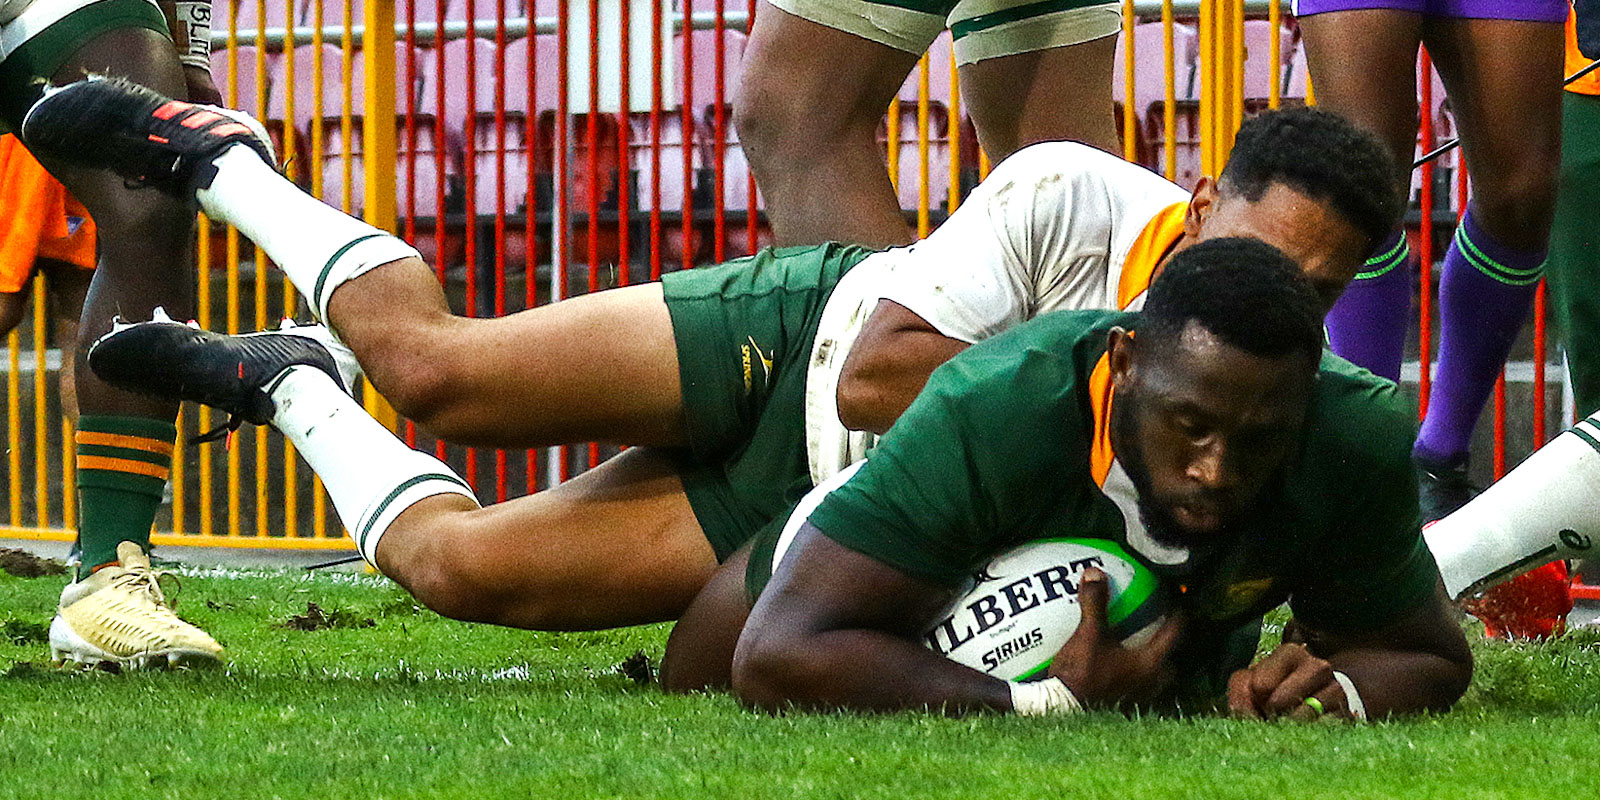 Siya Kolisi crosses for his try for the Green team.